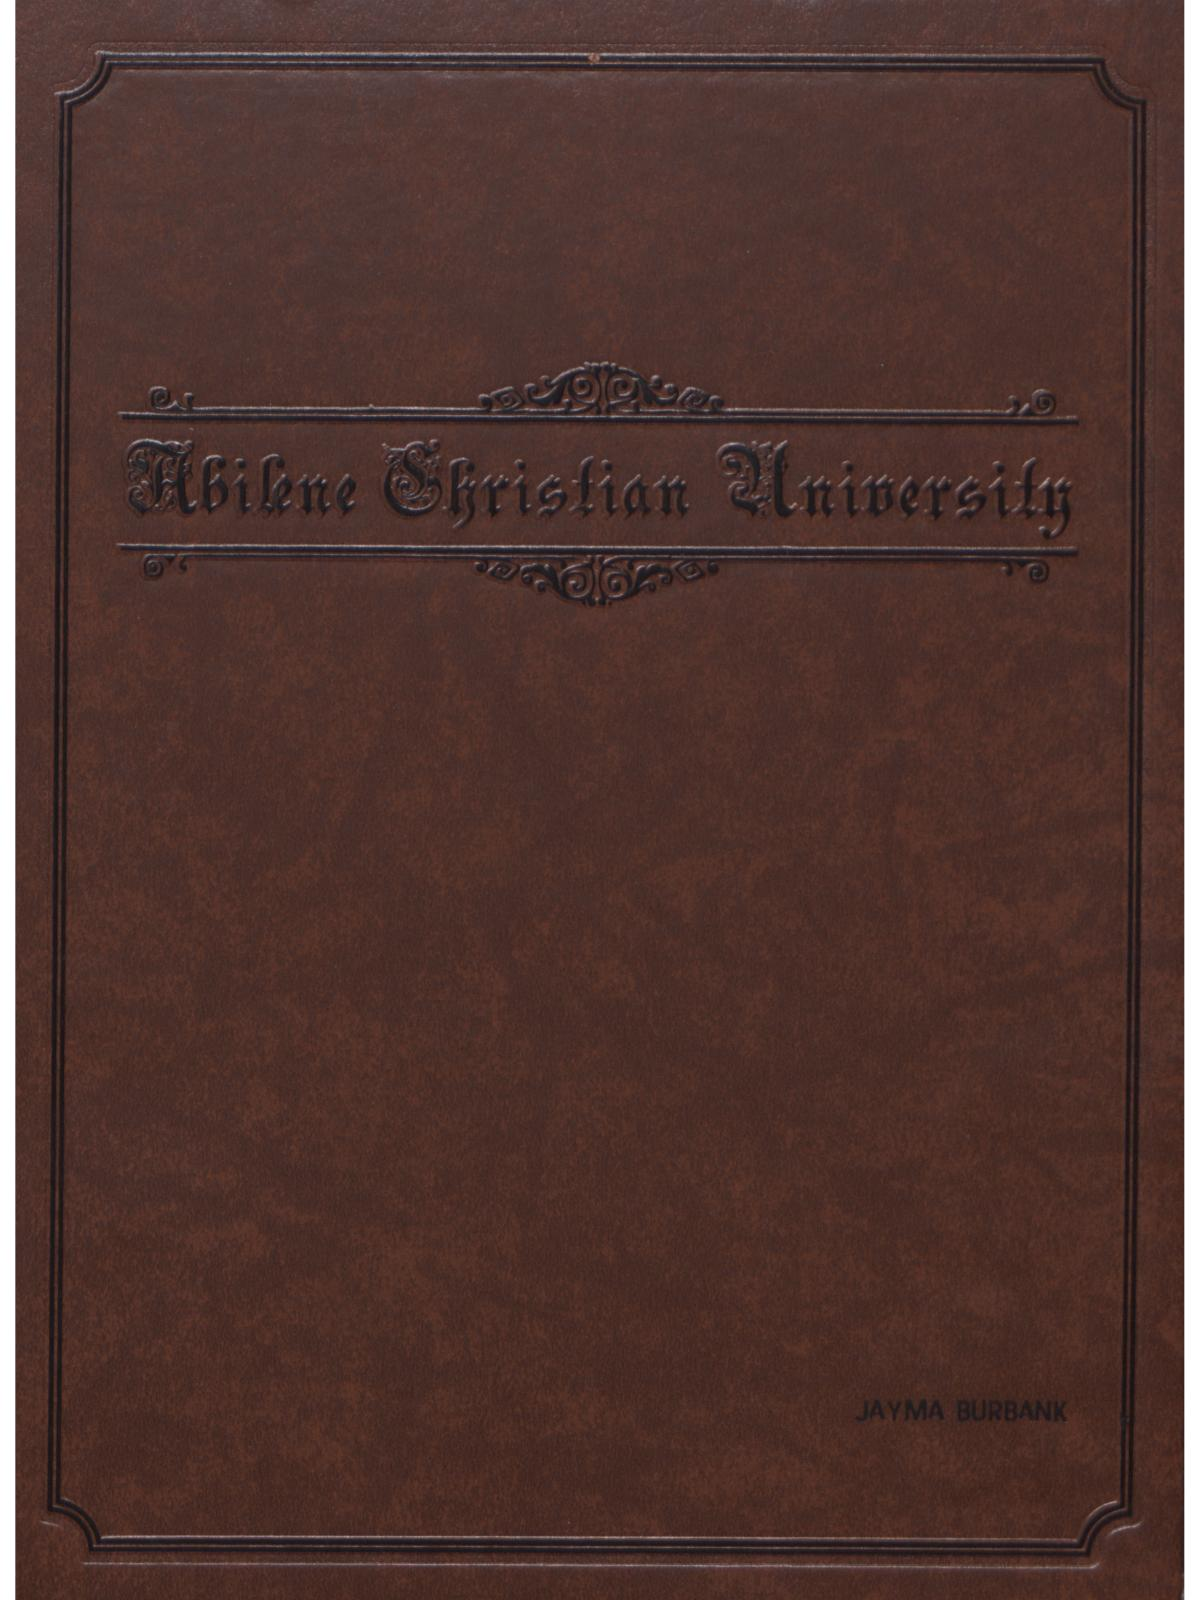 Prickly Pear, Yearbook of Abilene Christian University, 2007                                                                                                      Front Cover